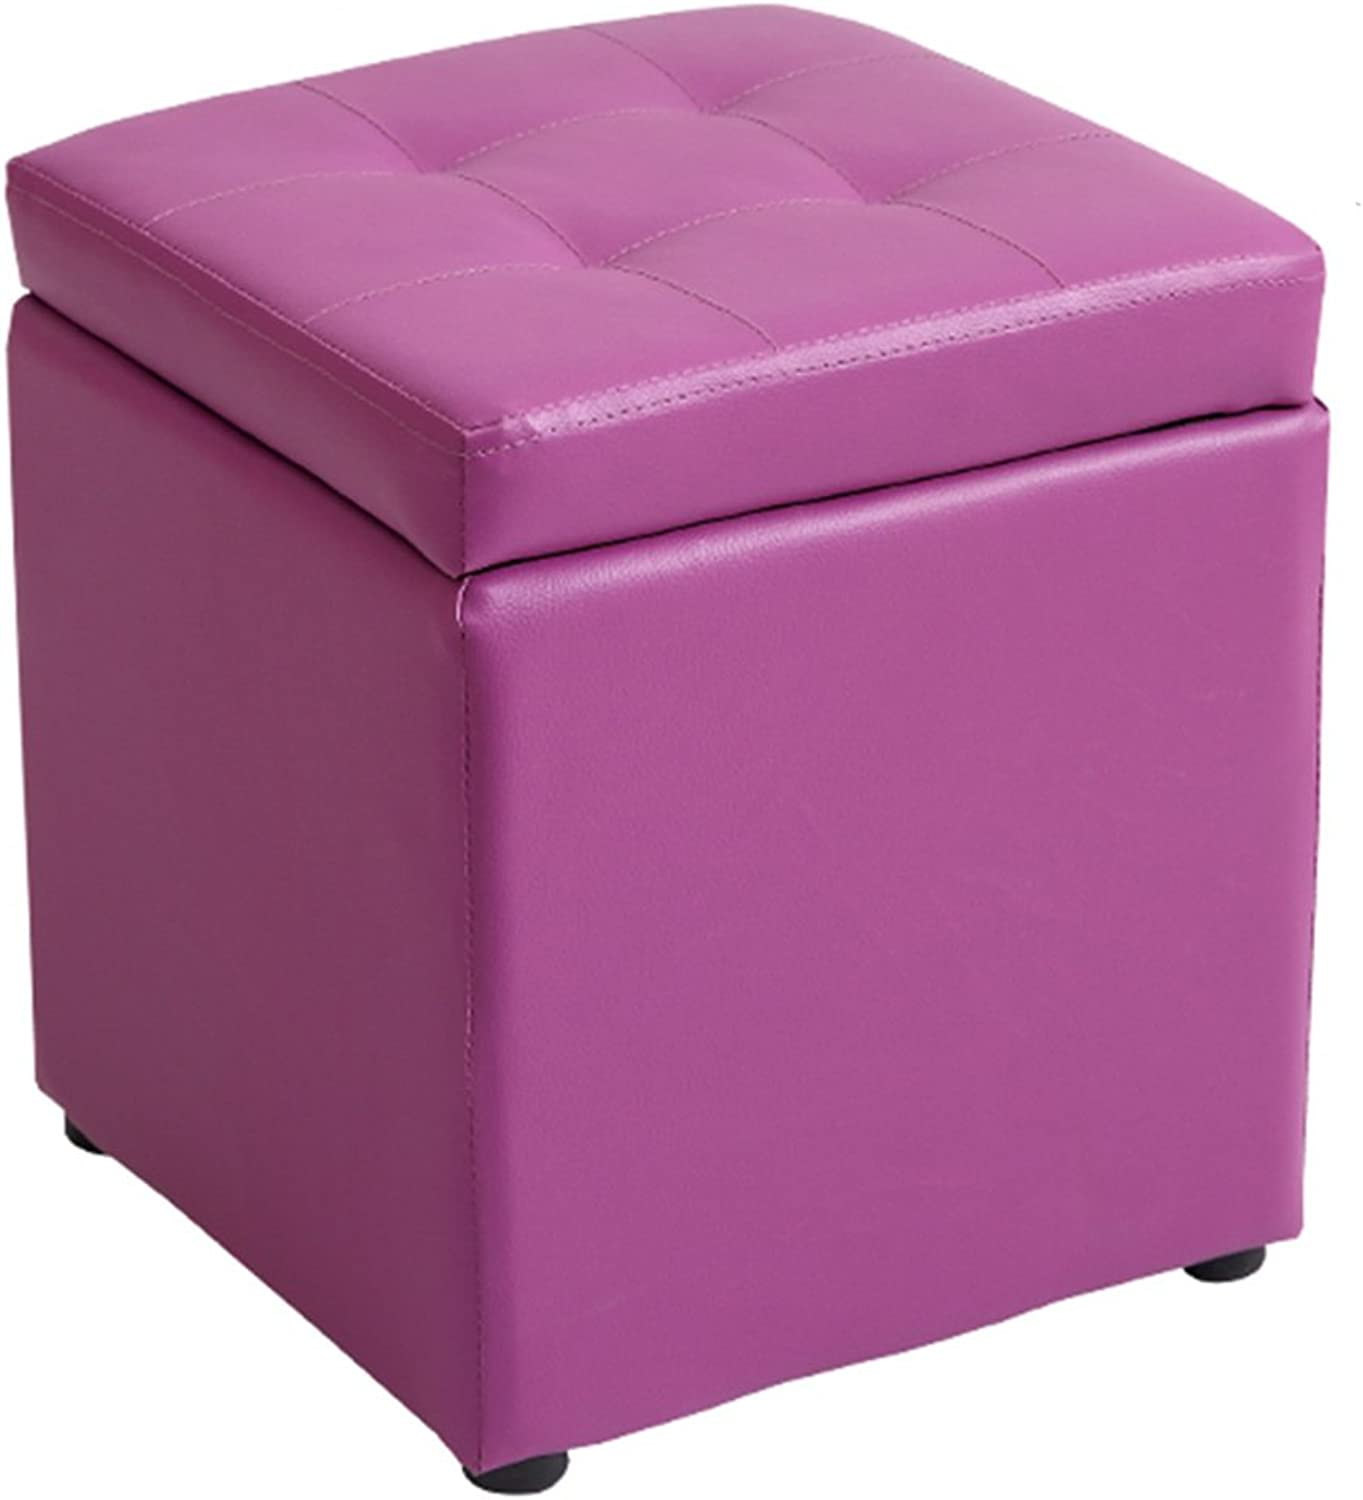 Byx- Solid Wood Fitting Room Non-Slip Storage Stool shoes Bench Foyer Stool Living Room Bedroom -Footstool with Storage (color   Purple)